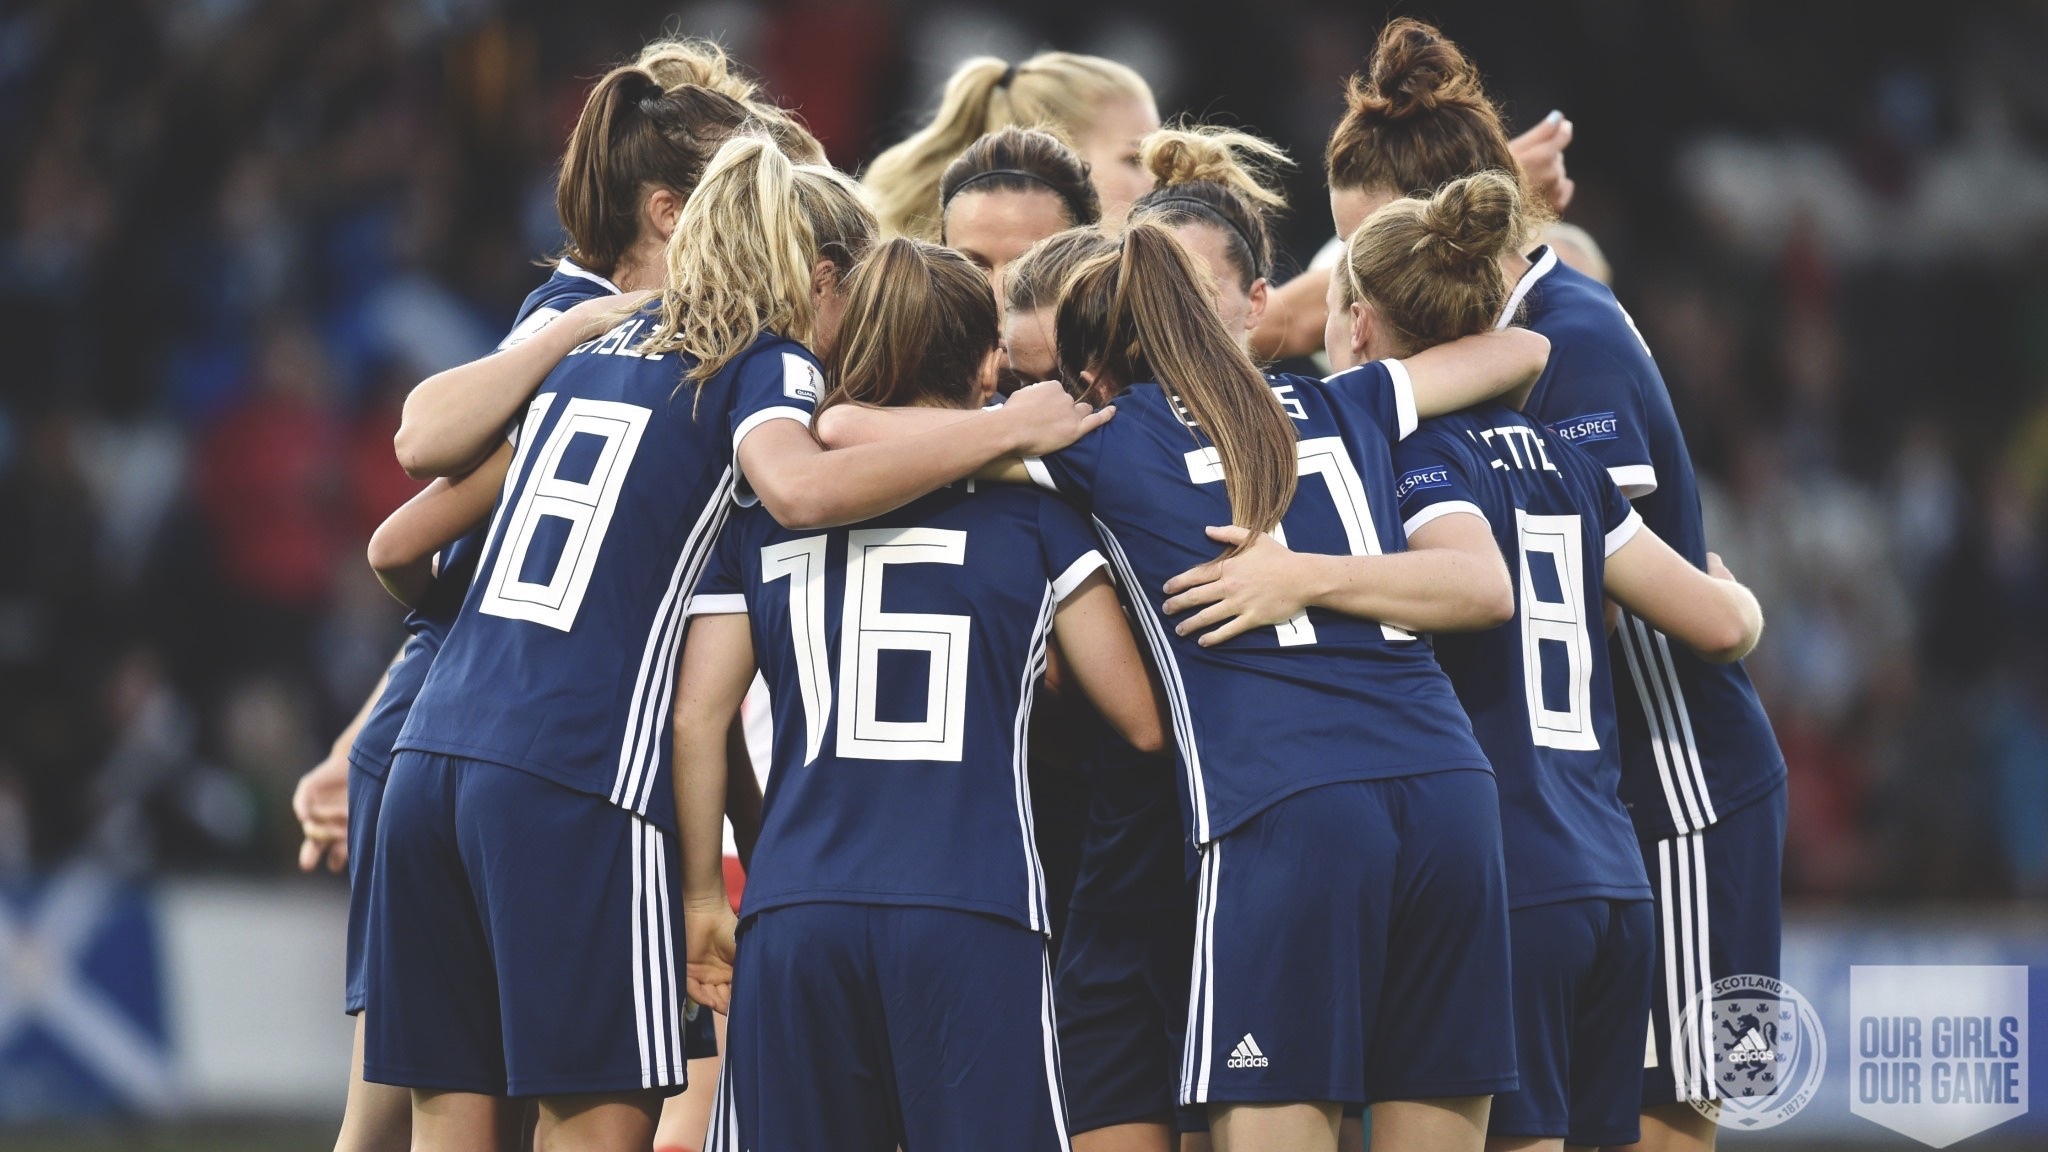 Scotland Women's National Team. Photo from @ScotlandNT